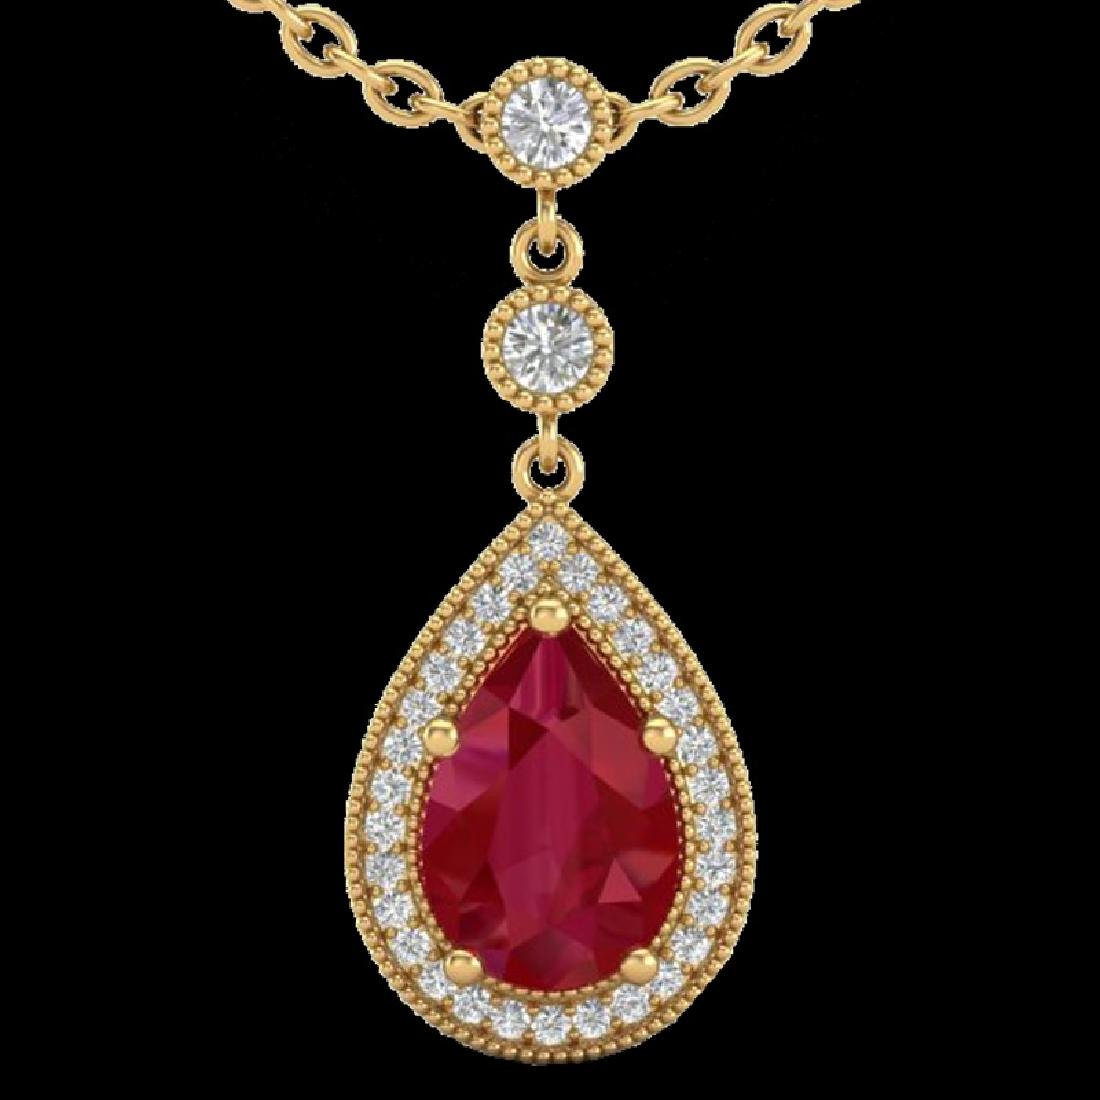 2.75 CTW Ruby & Micro Pave VS/SI Diamond Necklace - 2